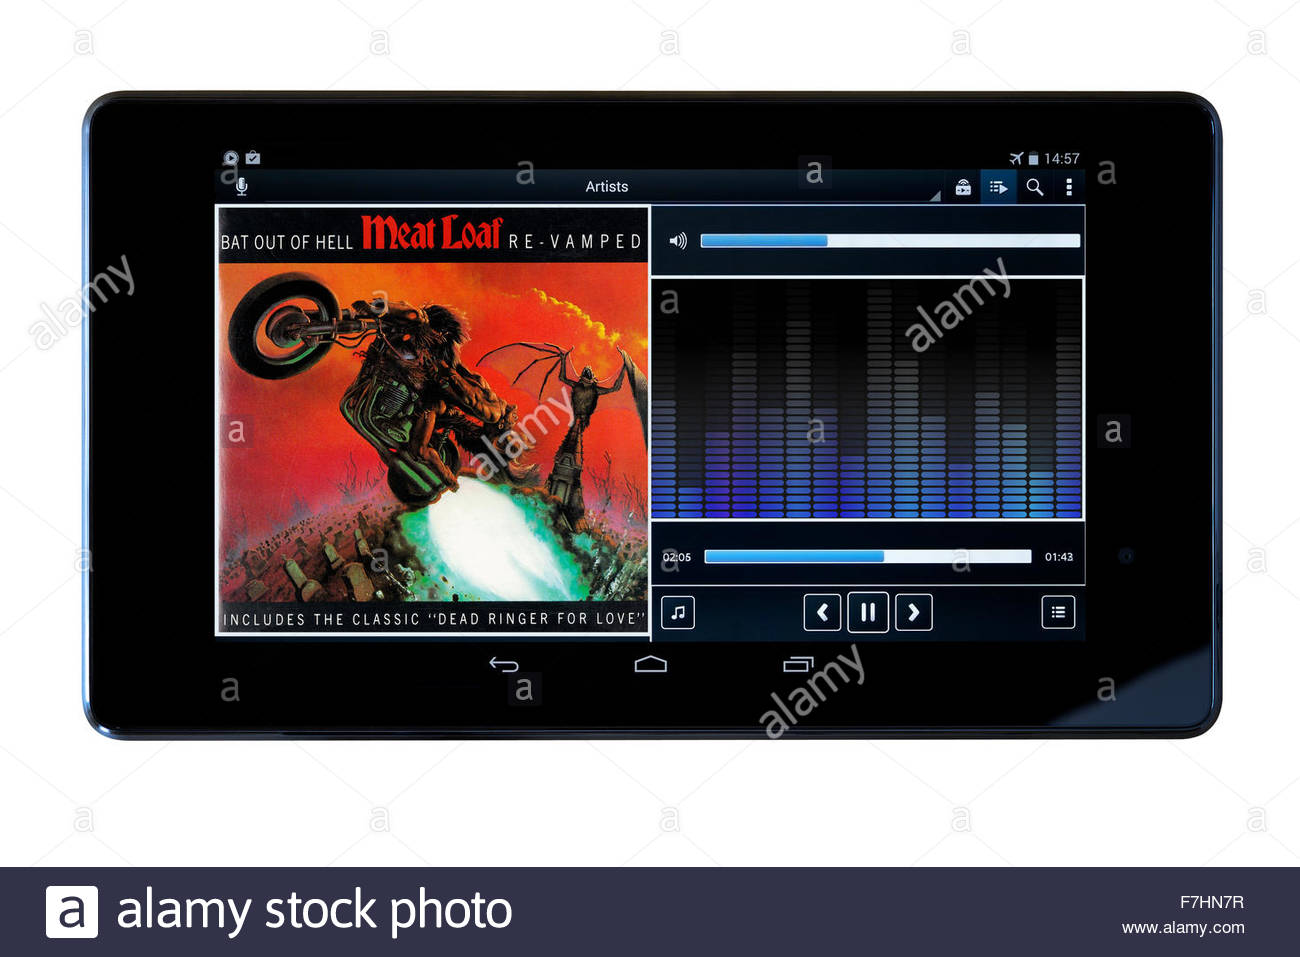 Meat Loaf Bat at of hell MP3 album art on PC tablet, England - Stock Image